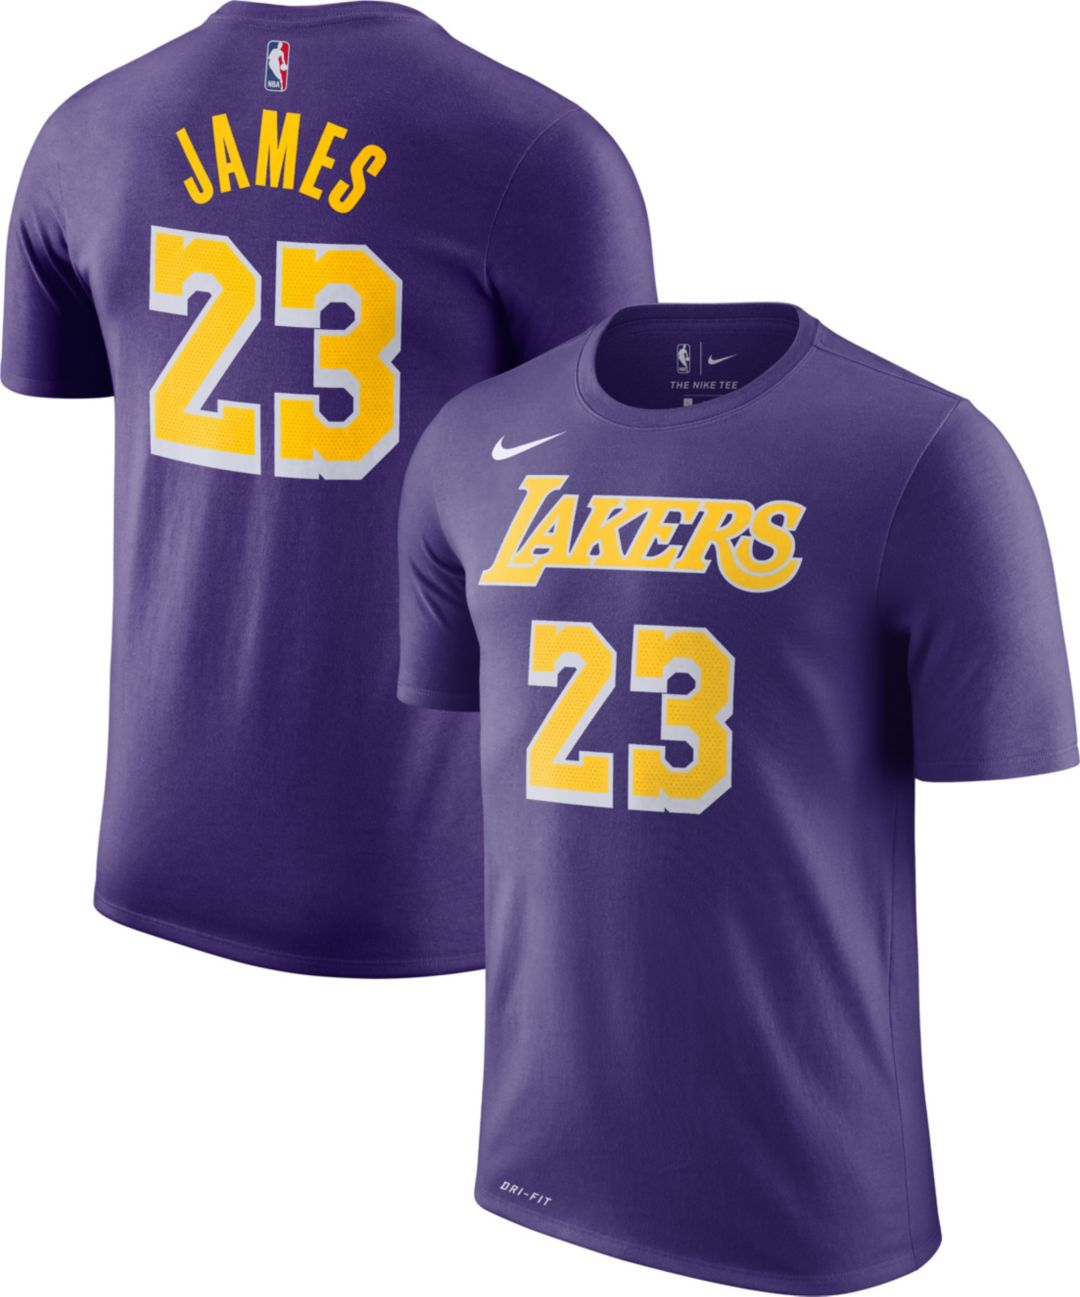 watch 9ad12 c8b56 Nike Men's Los Angeles Lakers LeBron James Dri-FIT Purple T-Shirt